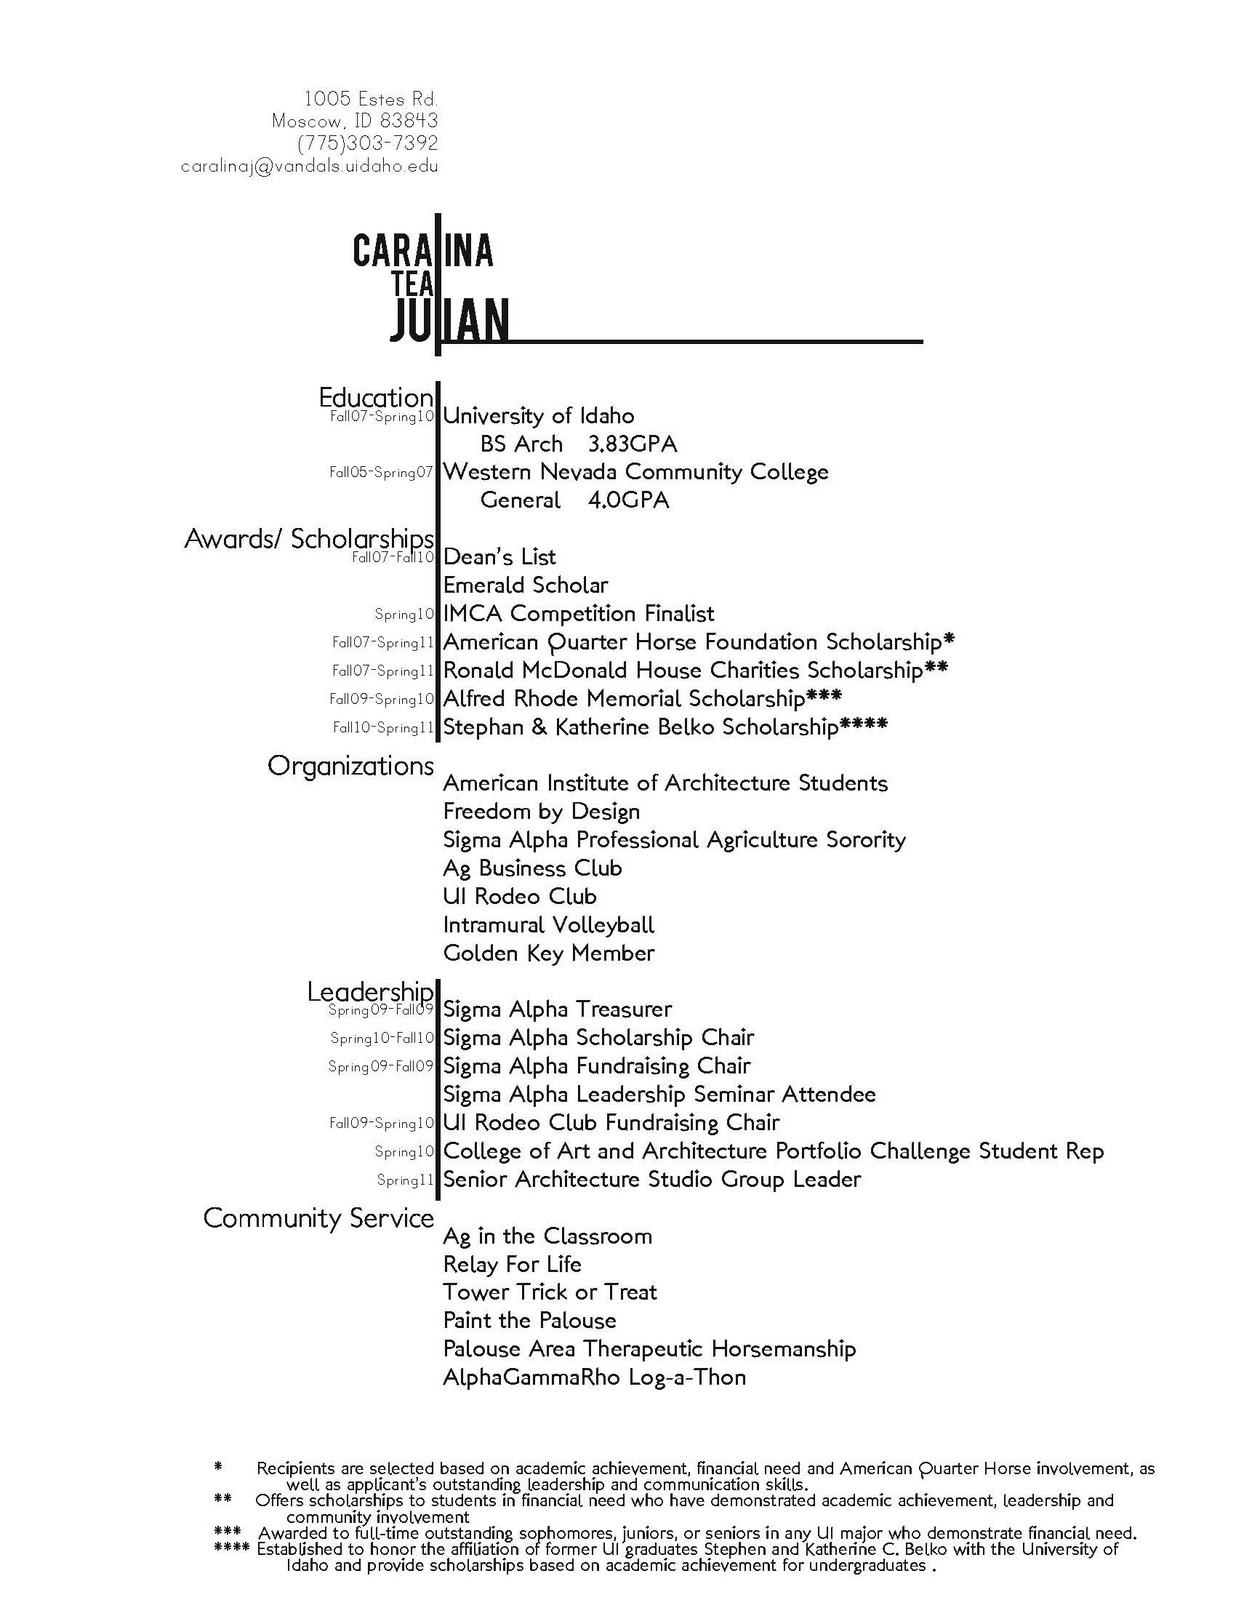 Sample Resume of GraduateStudent